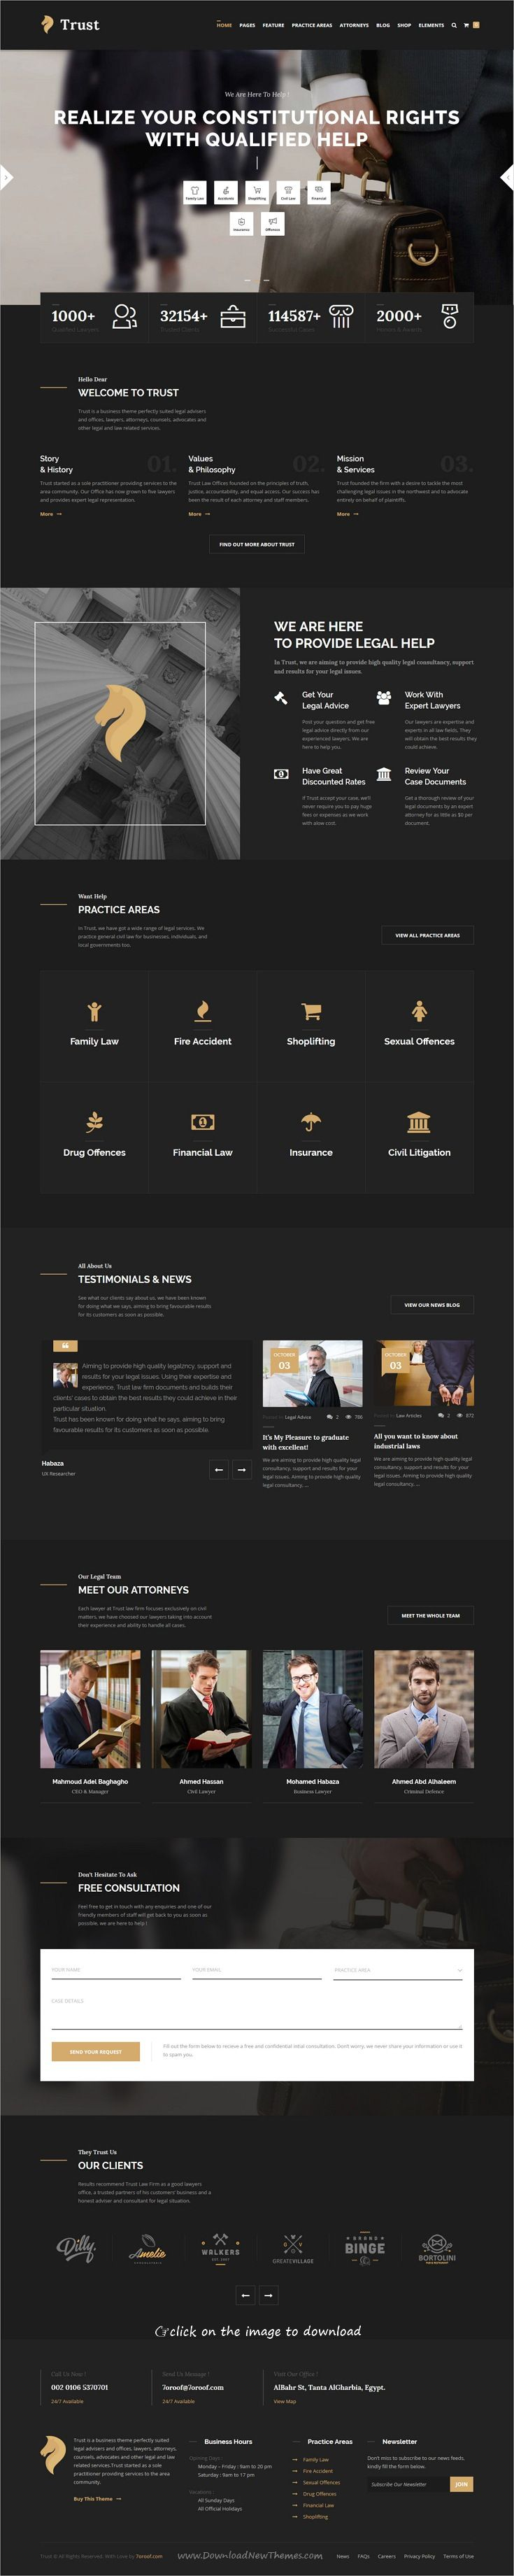 Trust Business - Lawyer and Attorney WordPress Theme   Professional ...